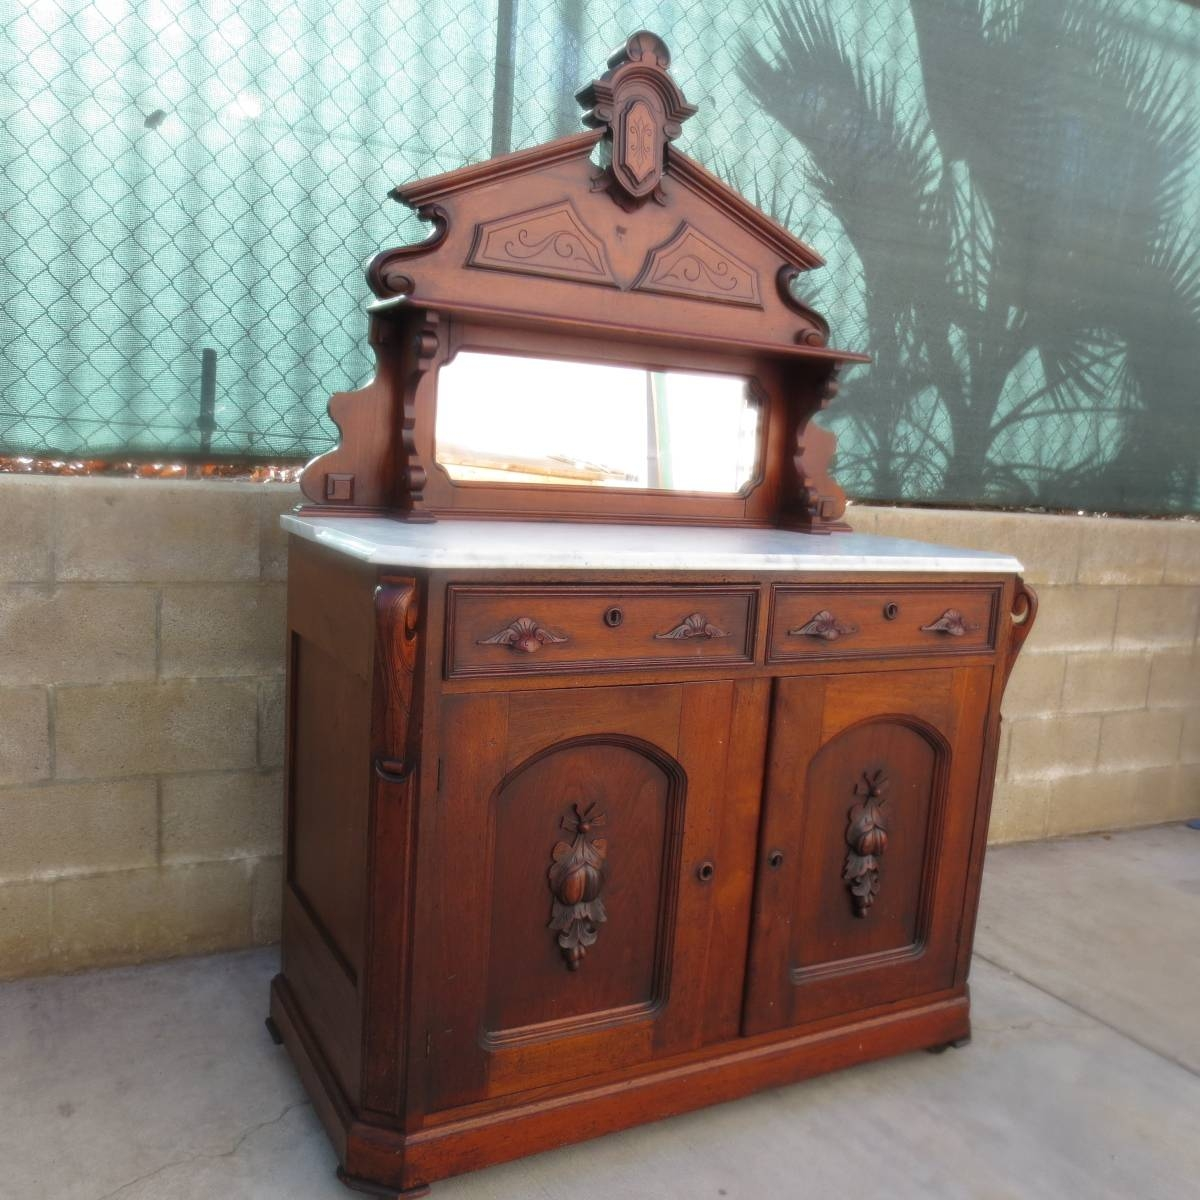 Antique Sideboards And Buffets Images — All Furniture : Antique With Regard To Recent Antique Sideboards And Buffets (#4 of 15)